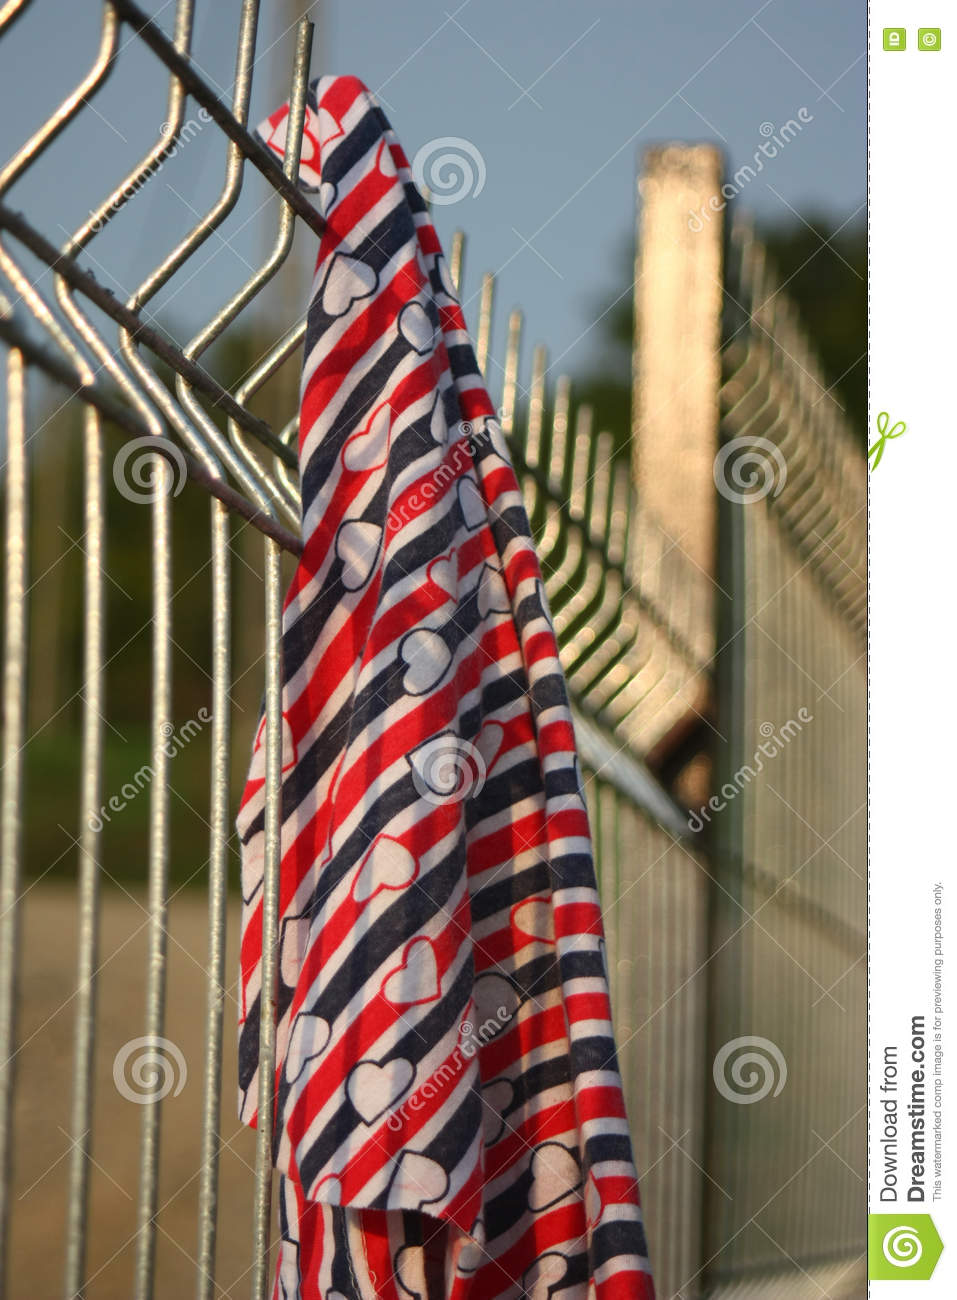 Welded Wire Fence. Stock Photo - Image: 80894791